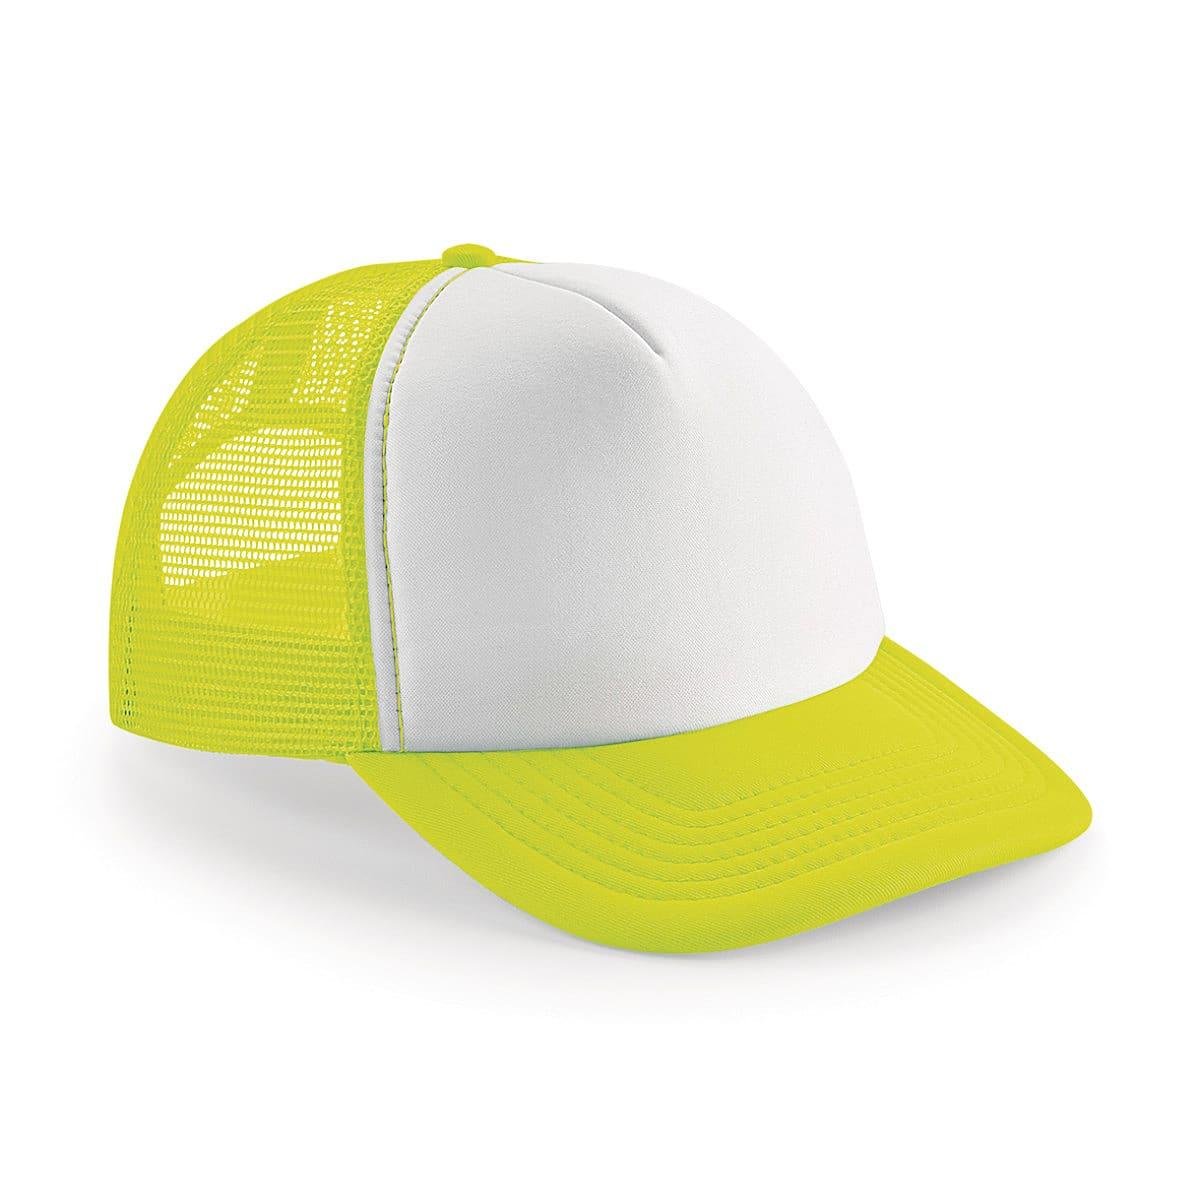 Beechfield Vintage Snapback Trucker Cap in Fluorescent Yellow / White (Product Code: B645)